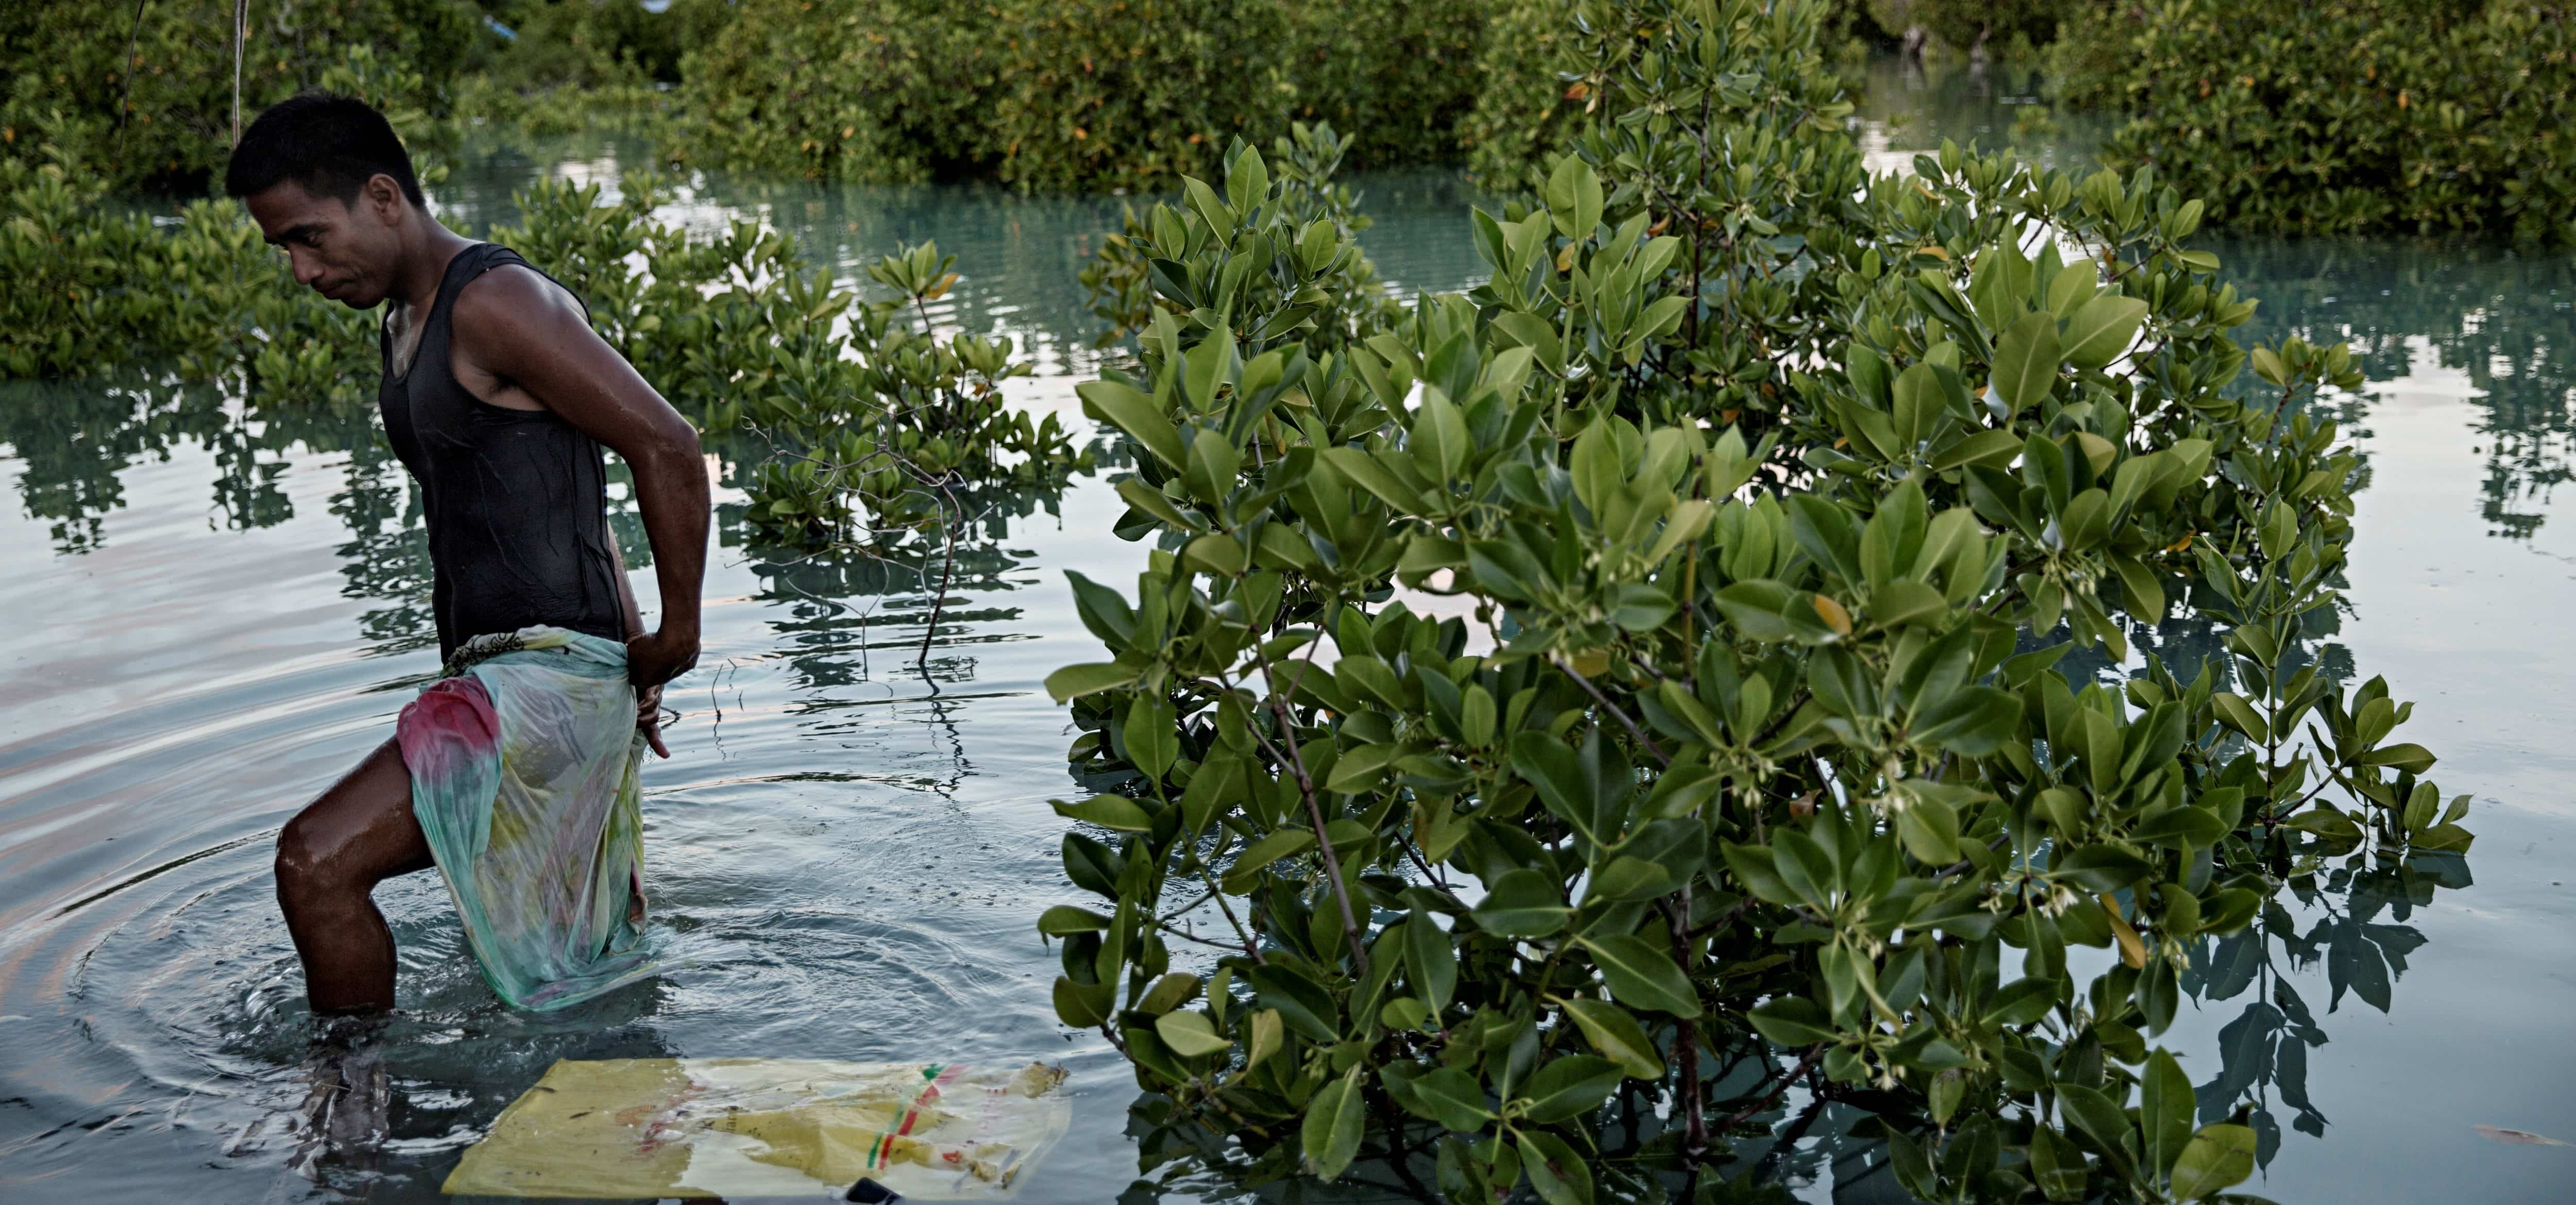 A flooded mangrove forest in Kiribati, September 2015 (Photo: Jonas Gratzer/Getty Images)